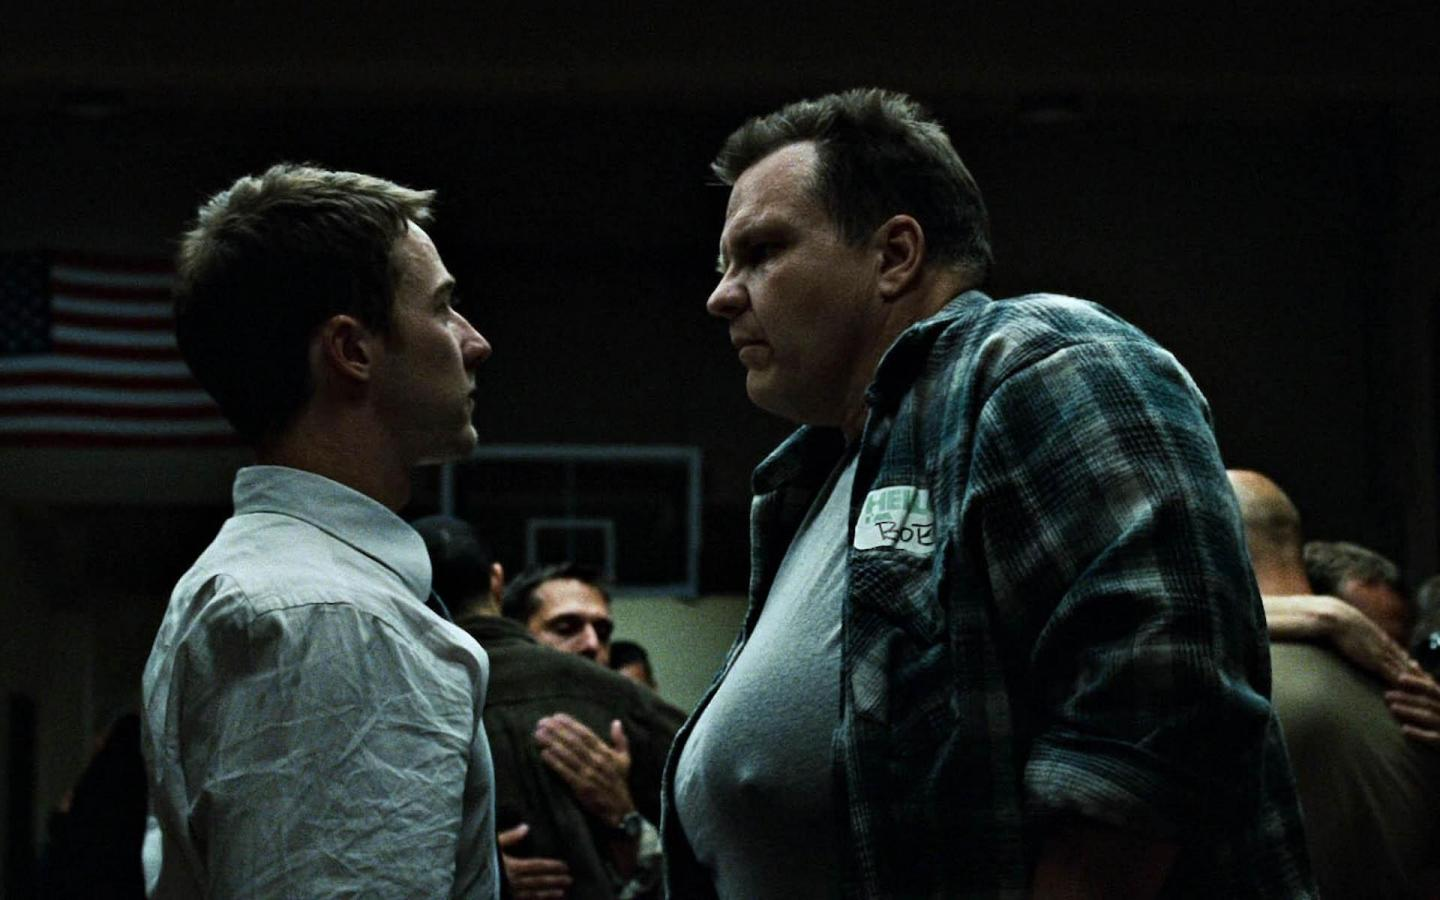 fight_club27_55737-1440x900